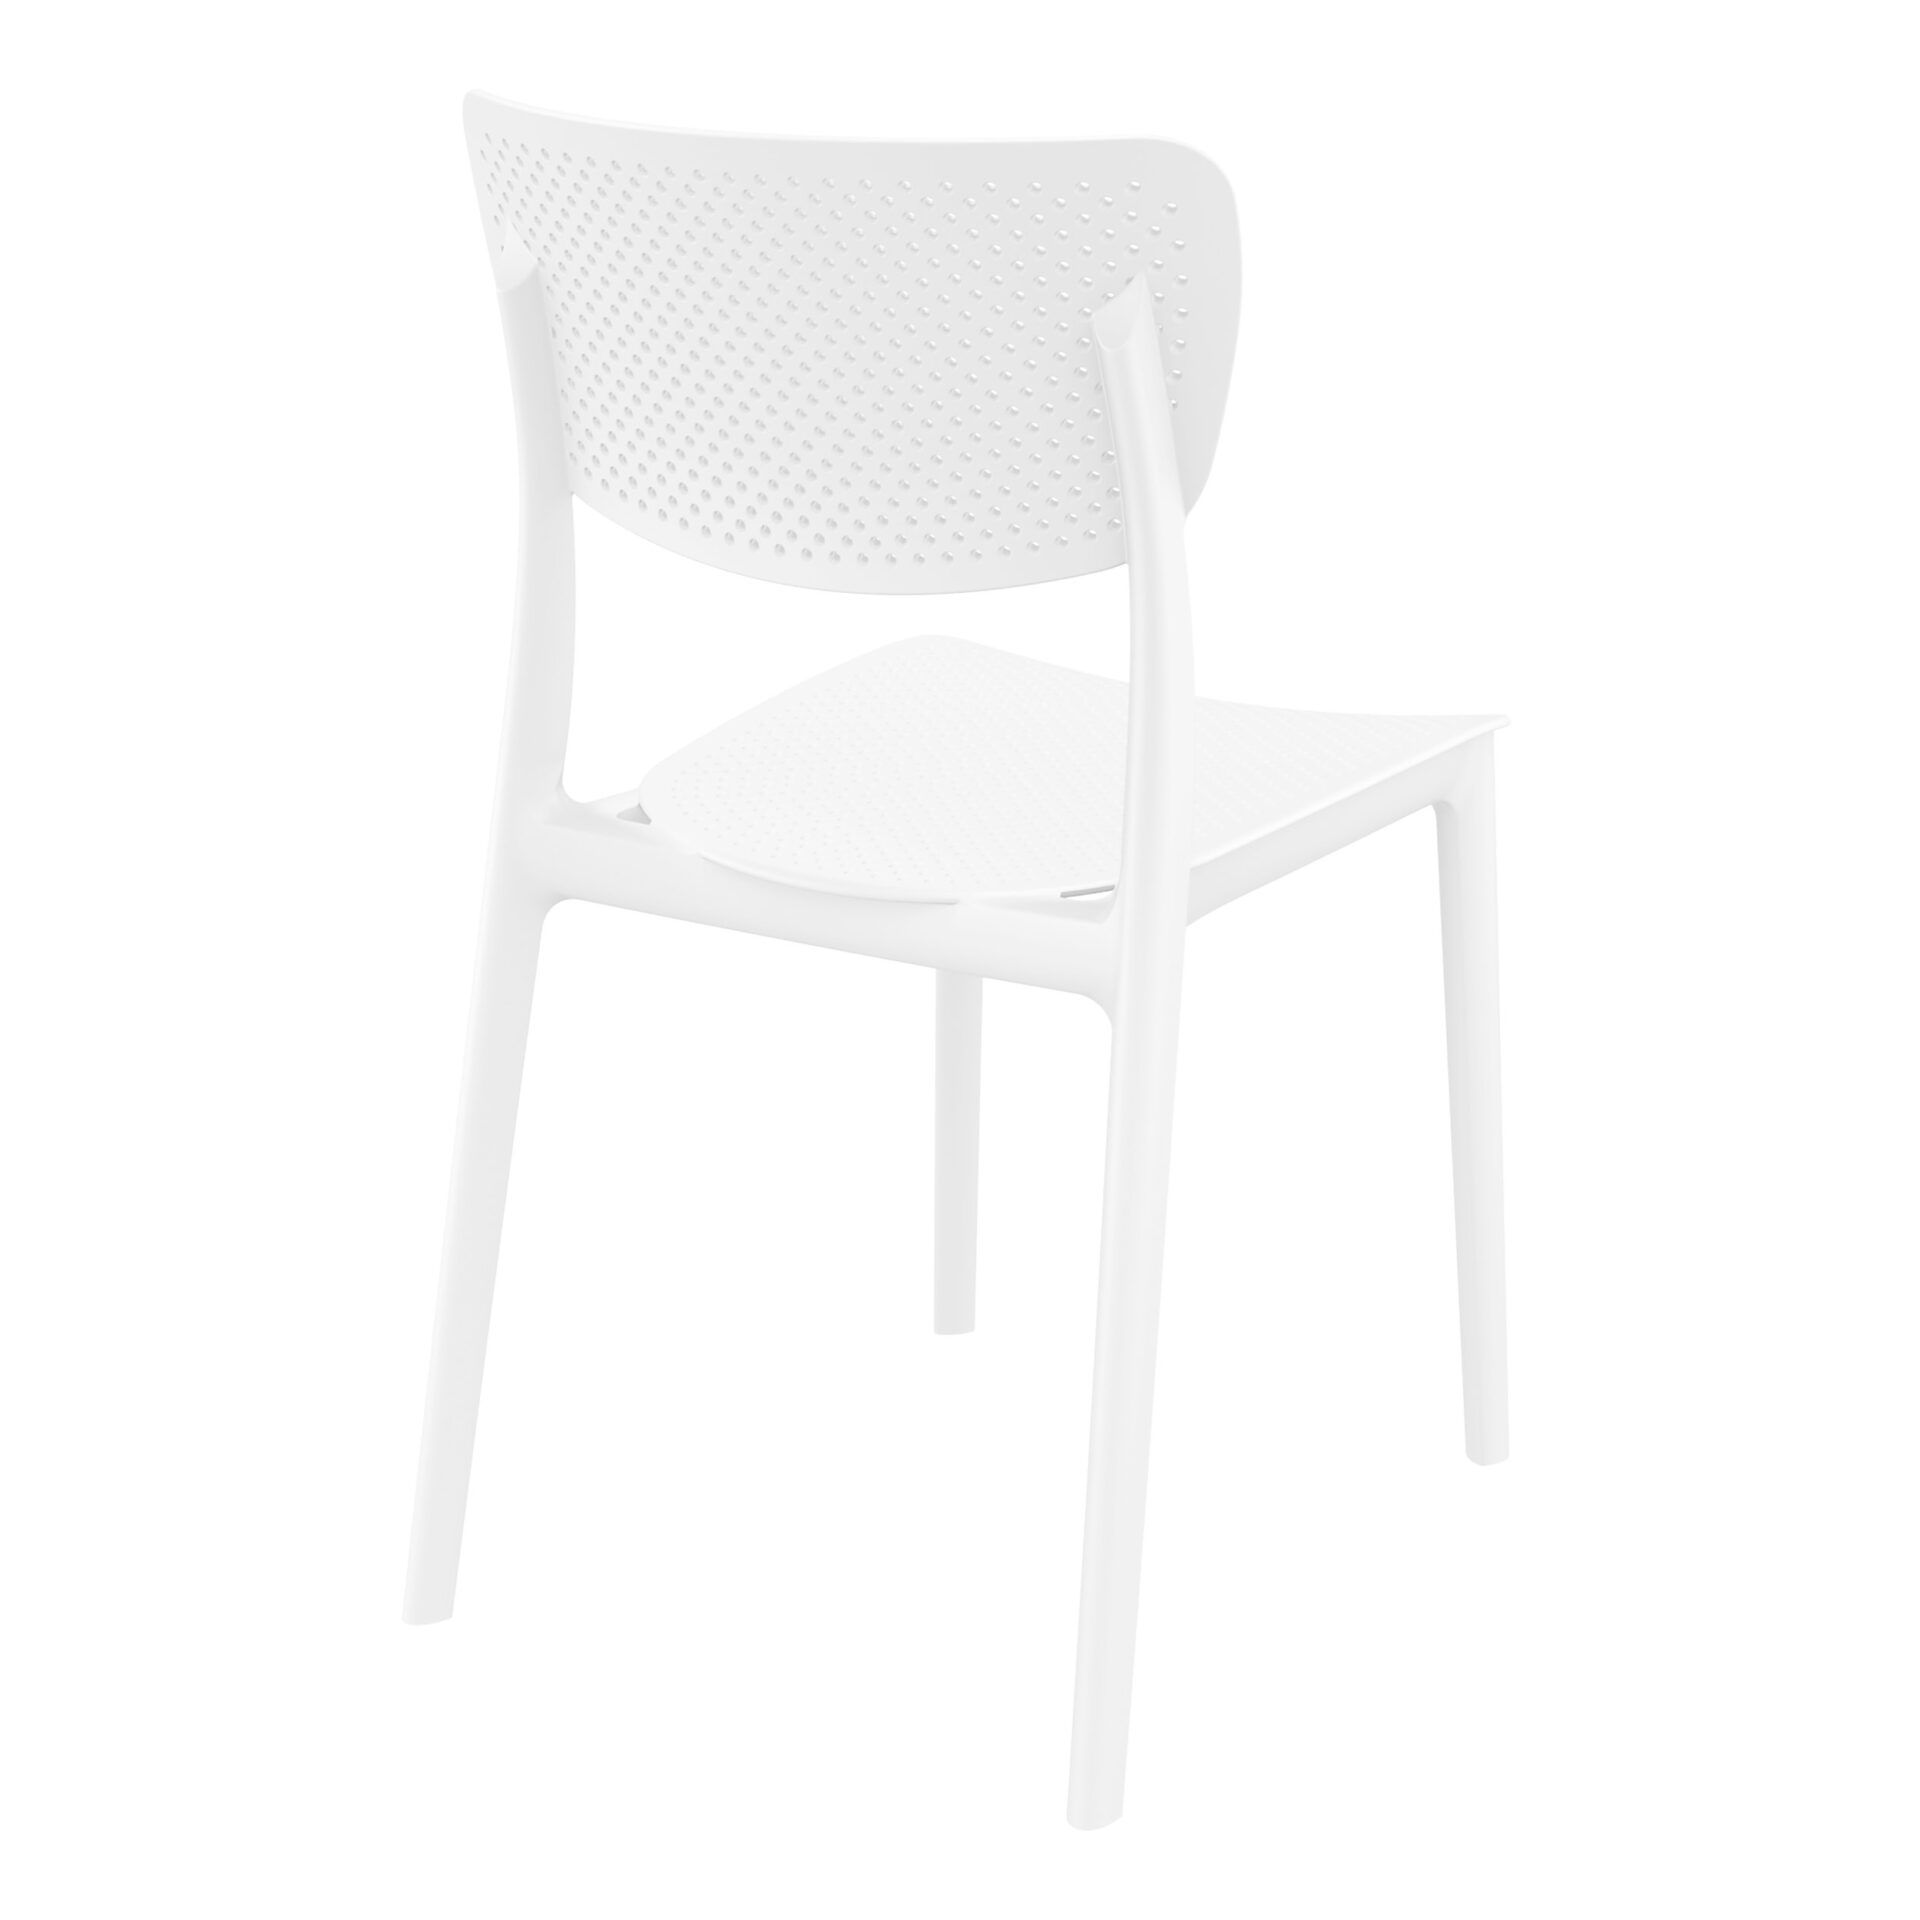 polypropylene hospitality seating lucy chair white back side